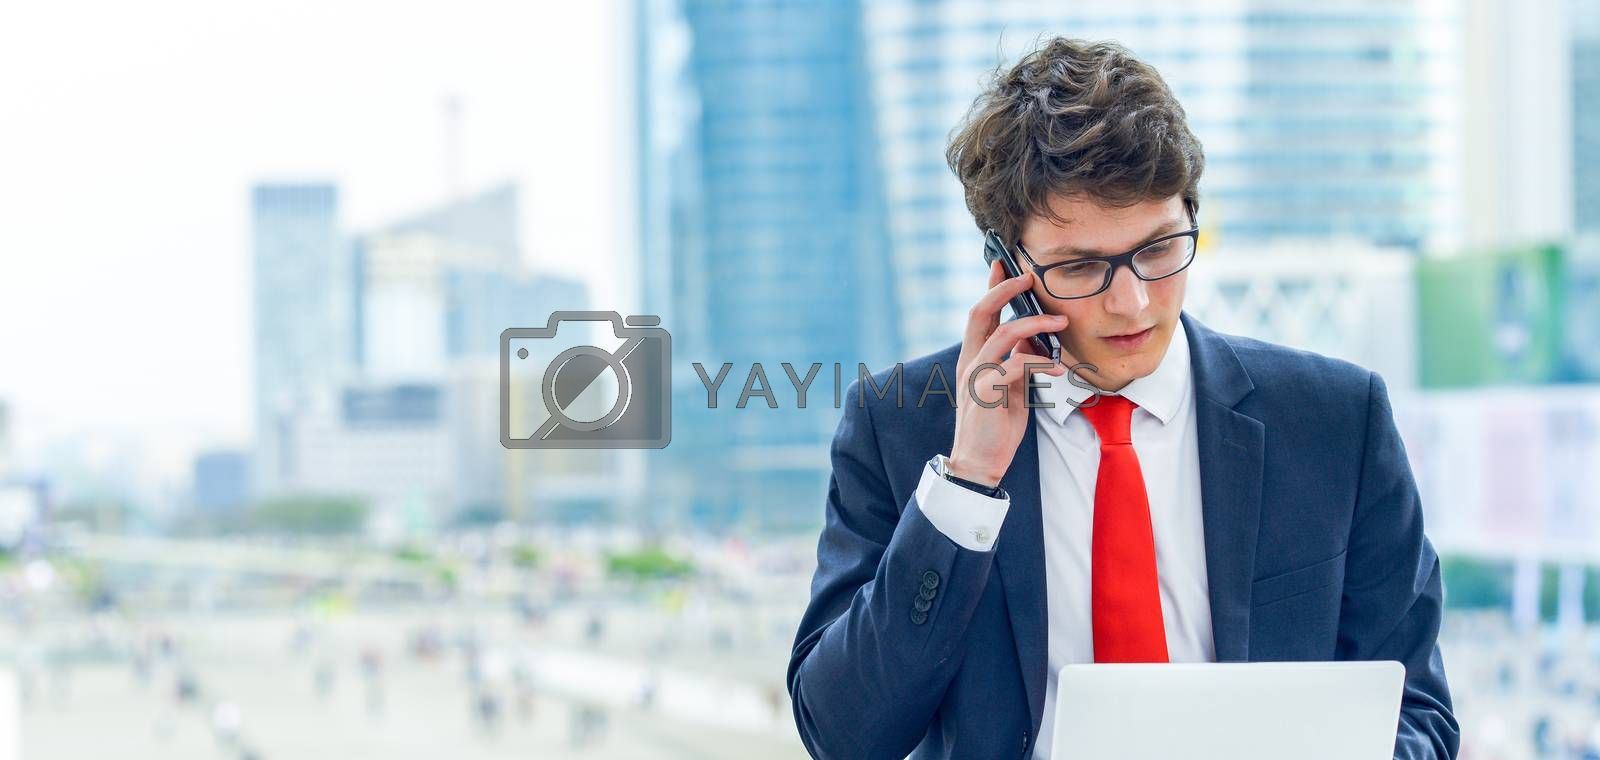 panoramic view on dynamic young executive calling outside, free of any constraint. Symbolizing a job search or a trade of outsourcing